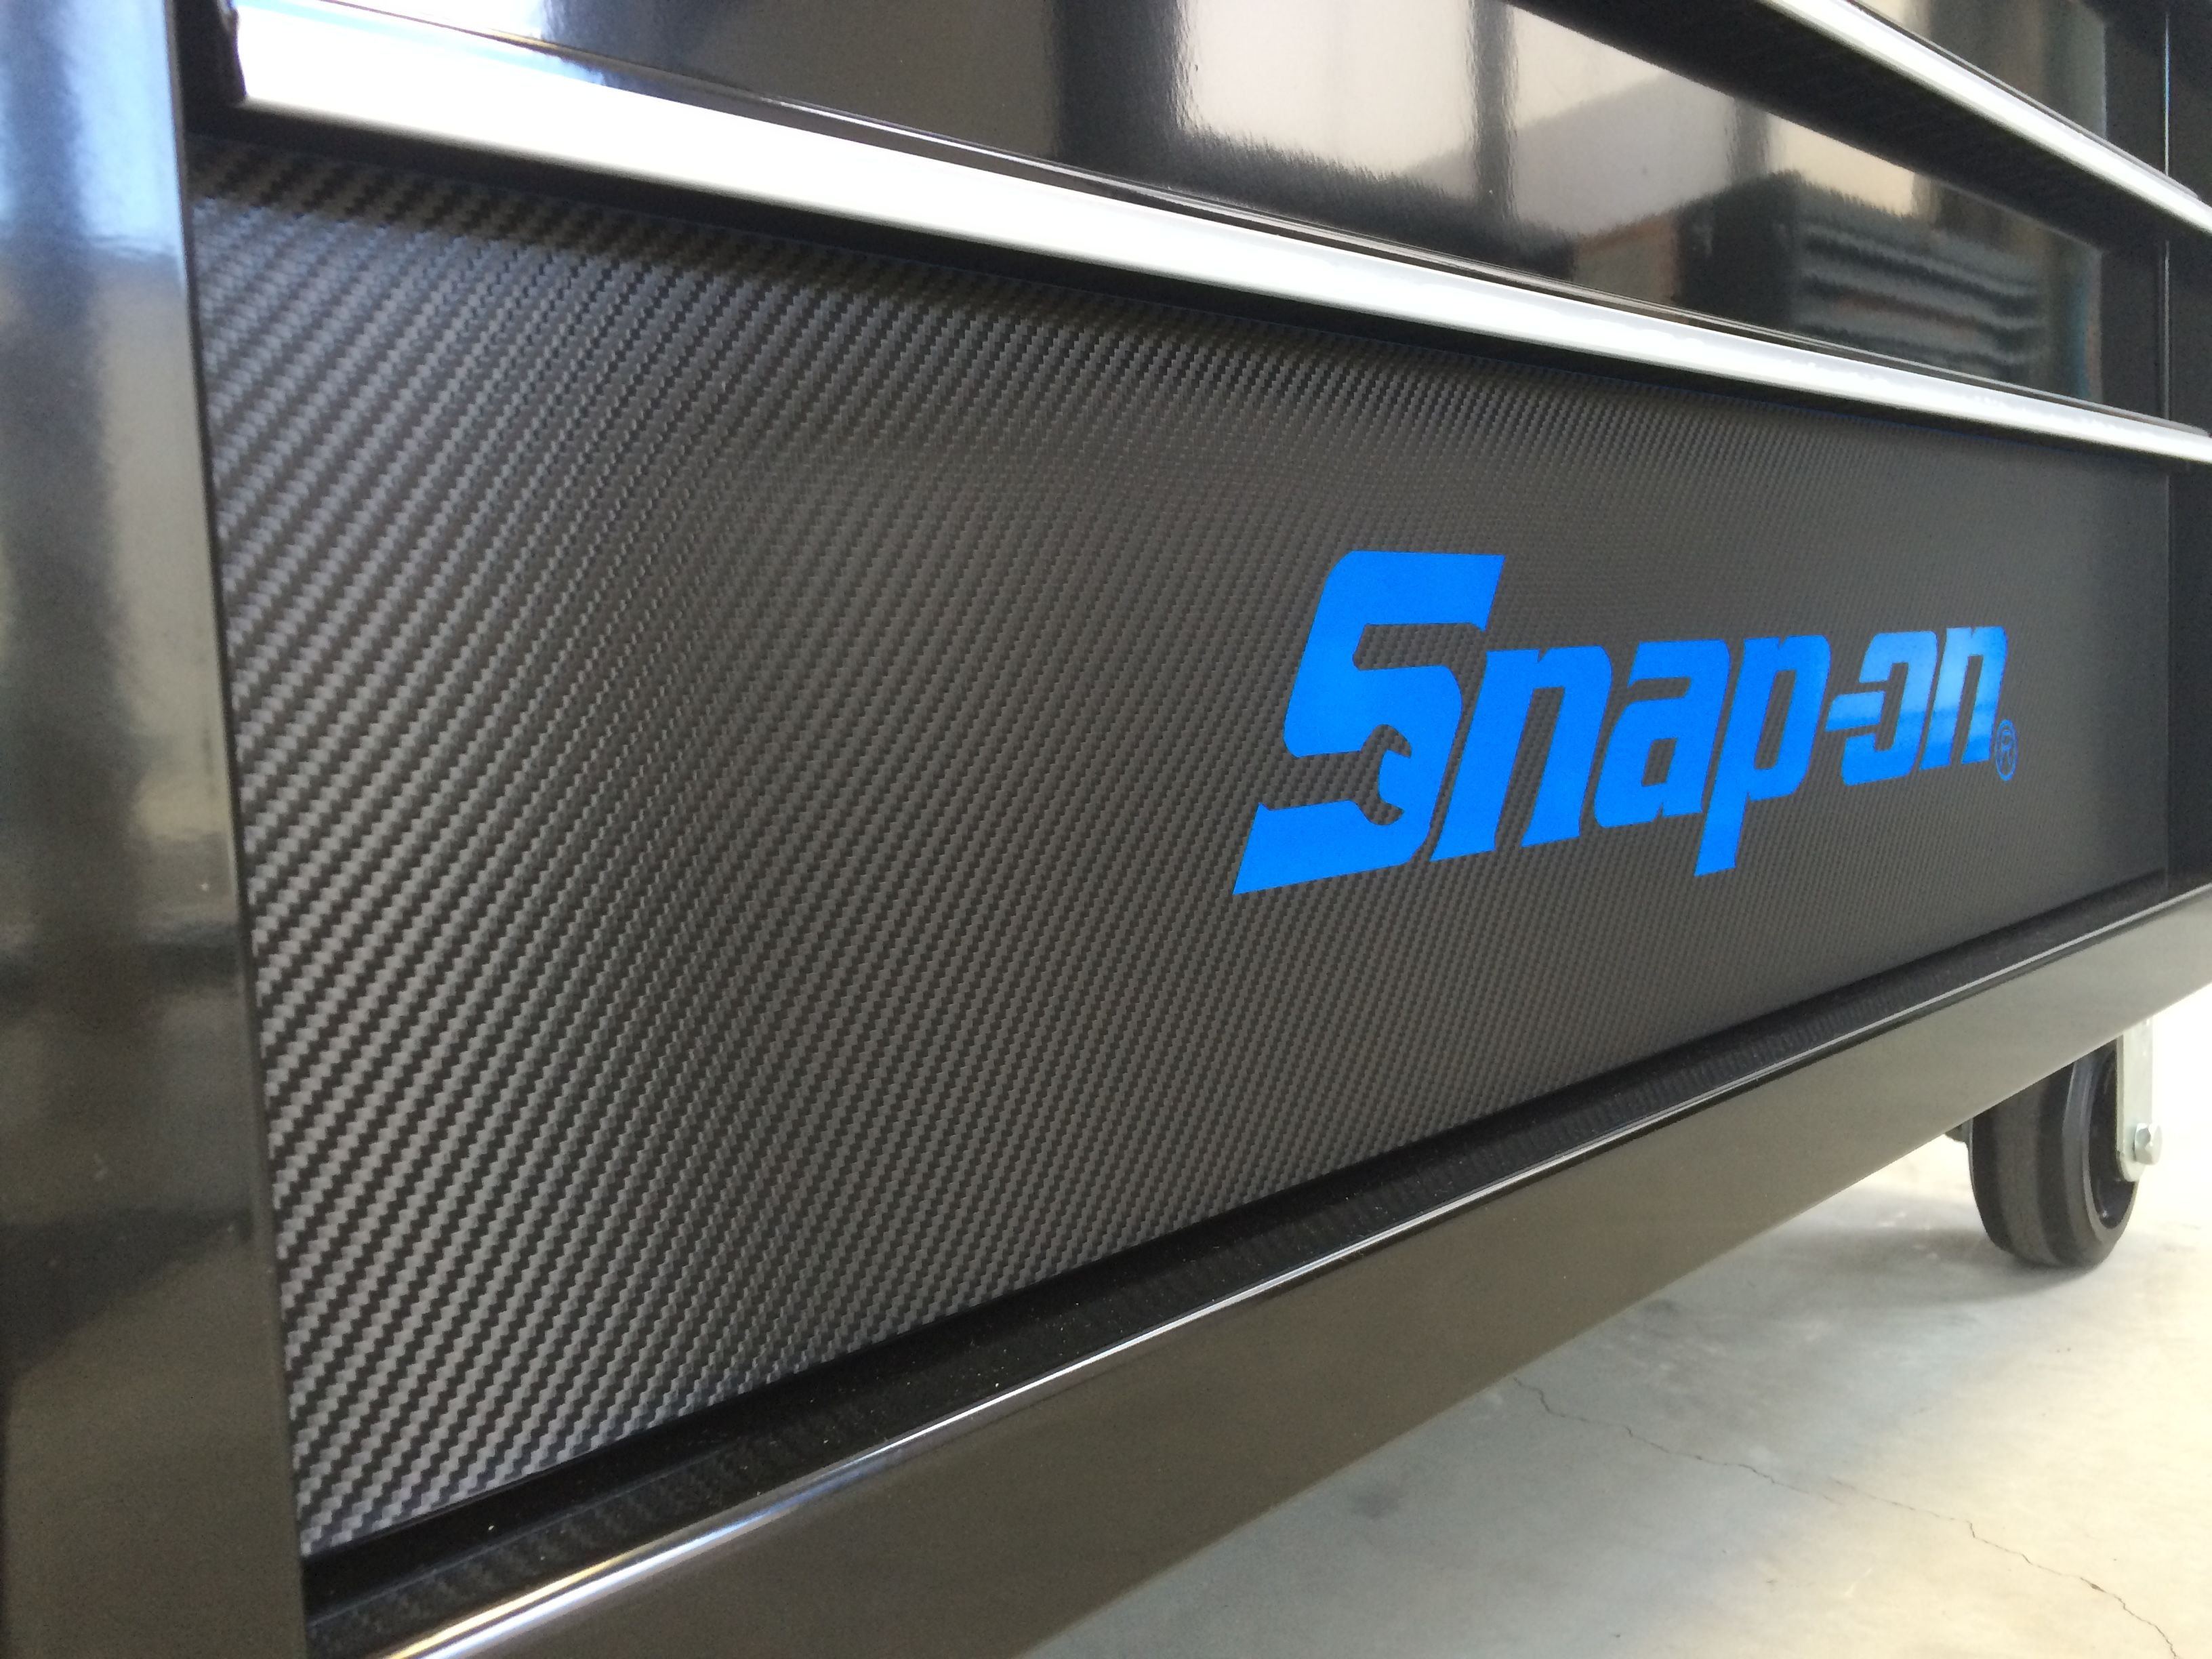 Custom Snap On Tool Box Carbon Fibre Wrap In 2019 Tools